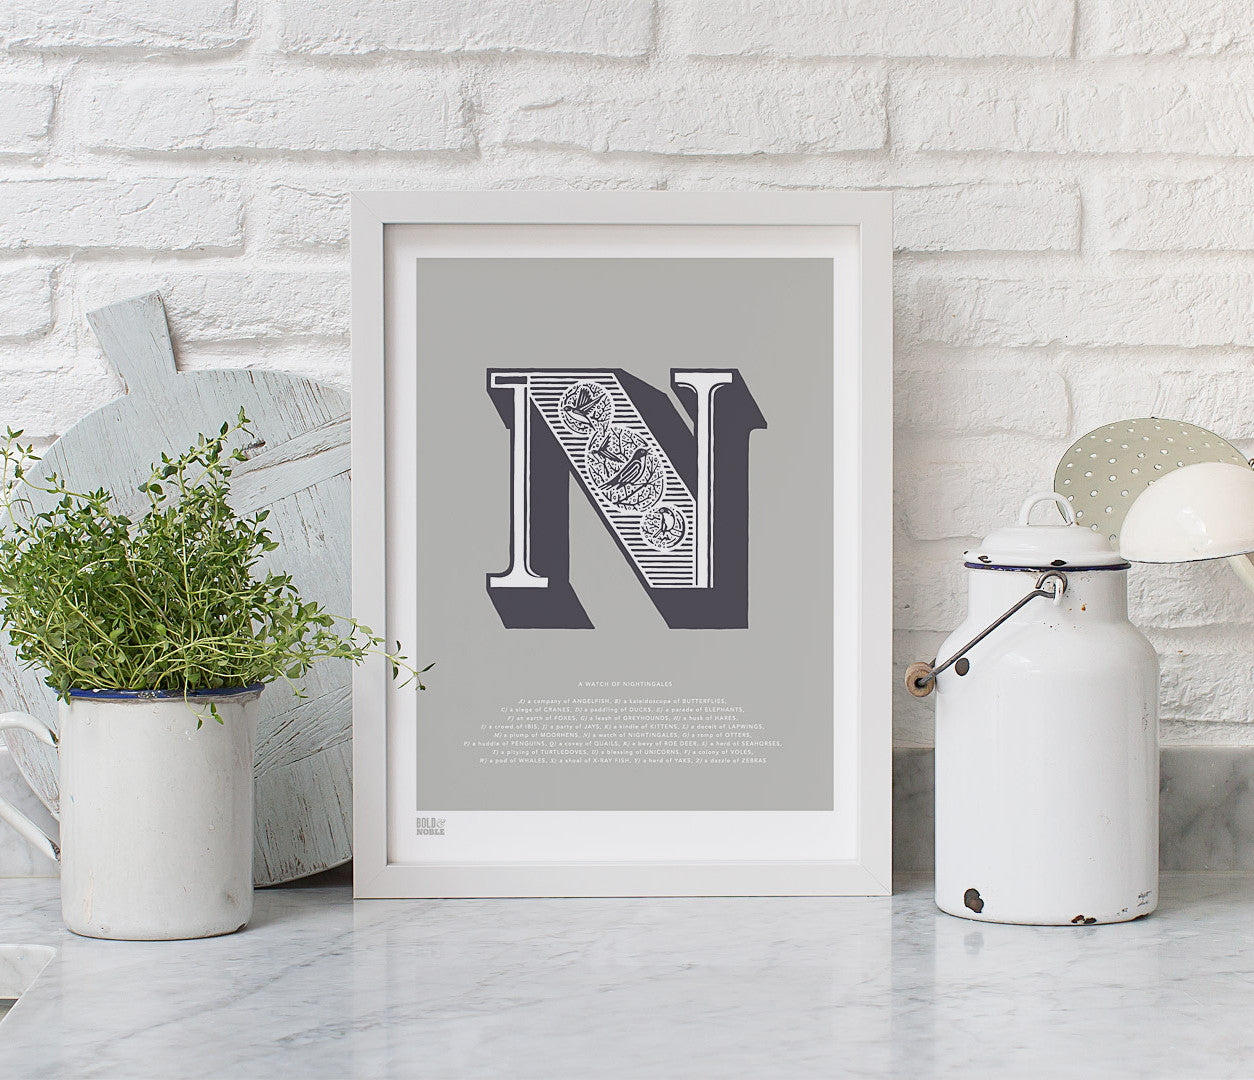 Pictures and Wall Art, Screen Printed Illustrated Letter N design in putty grey